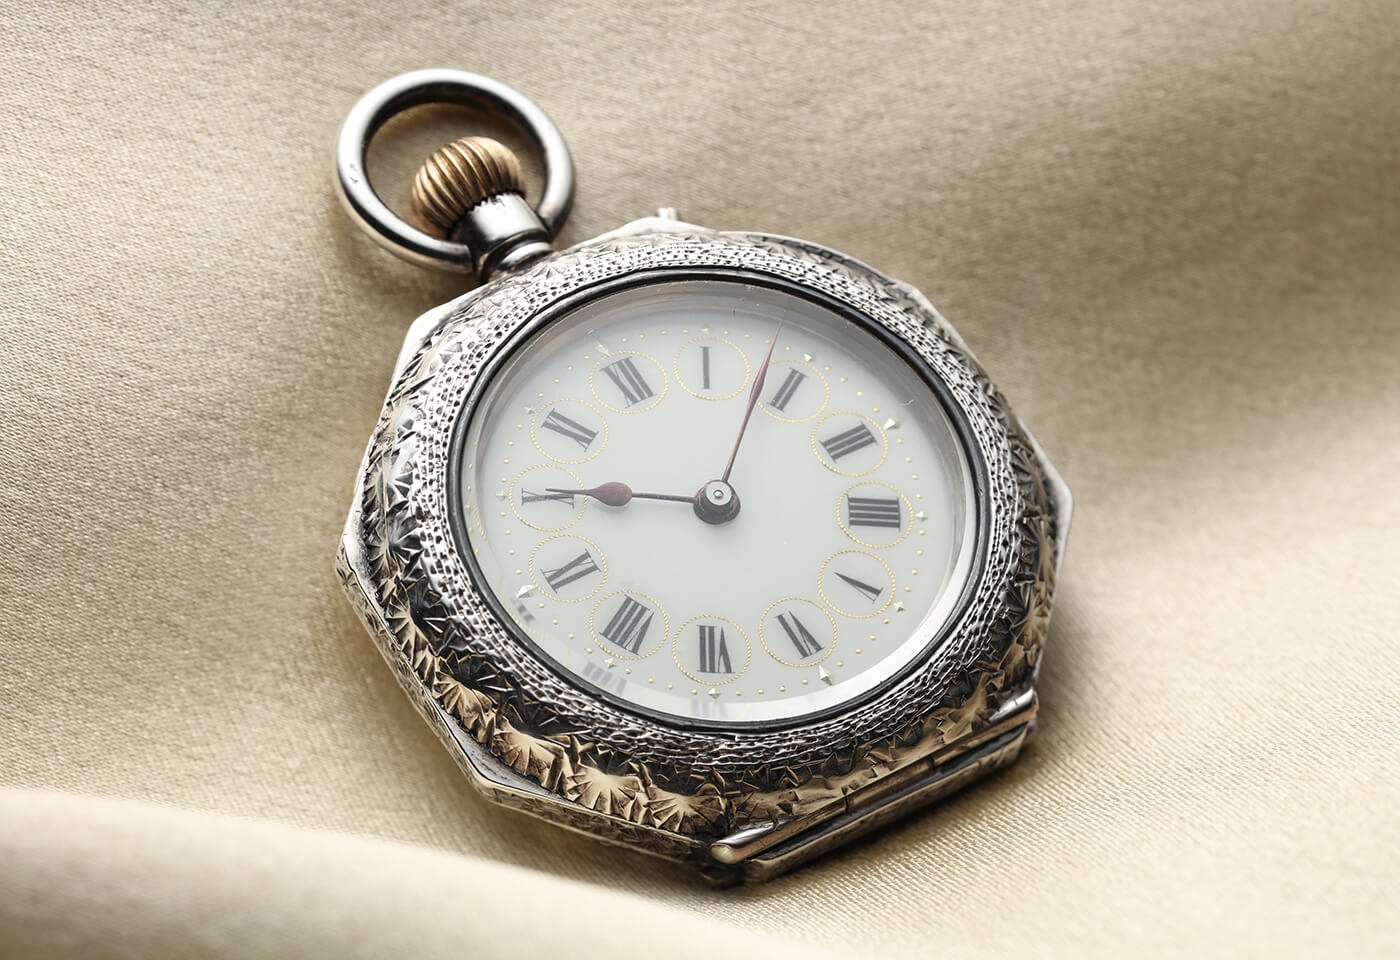 Pocket watch image taken with TSE 90mm f2 8L Macro